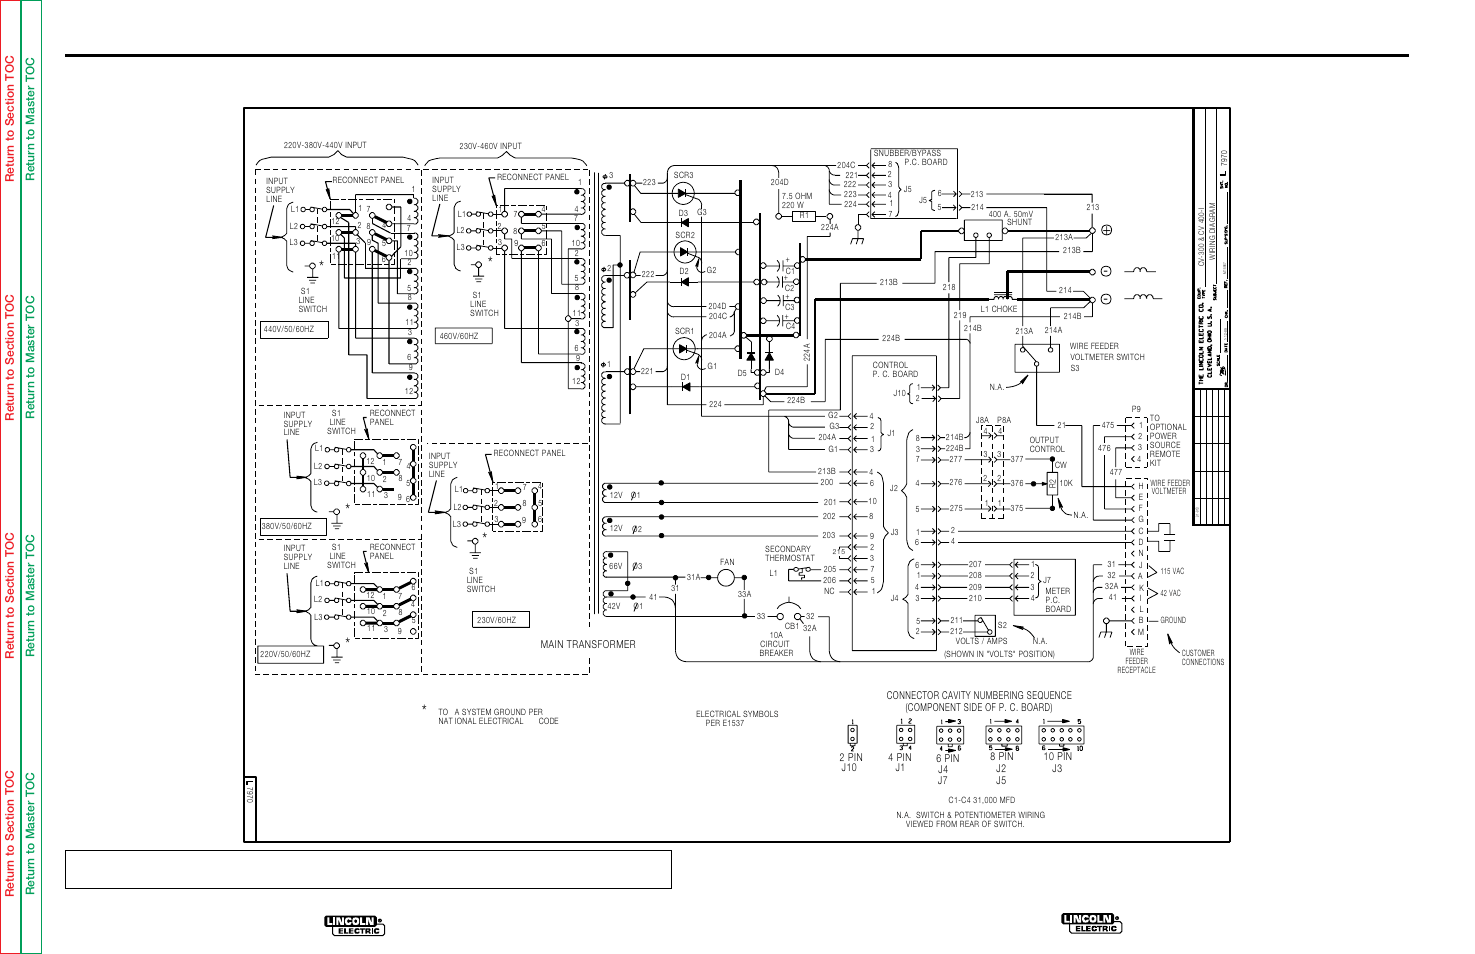 Electrical diagrams, Wiring diagram for code 9456